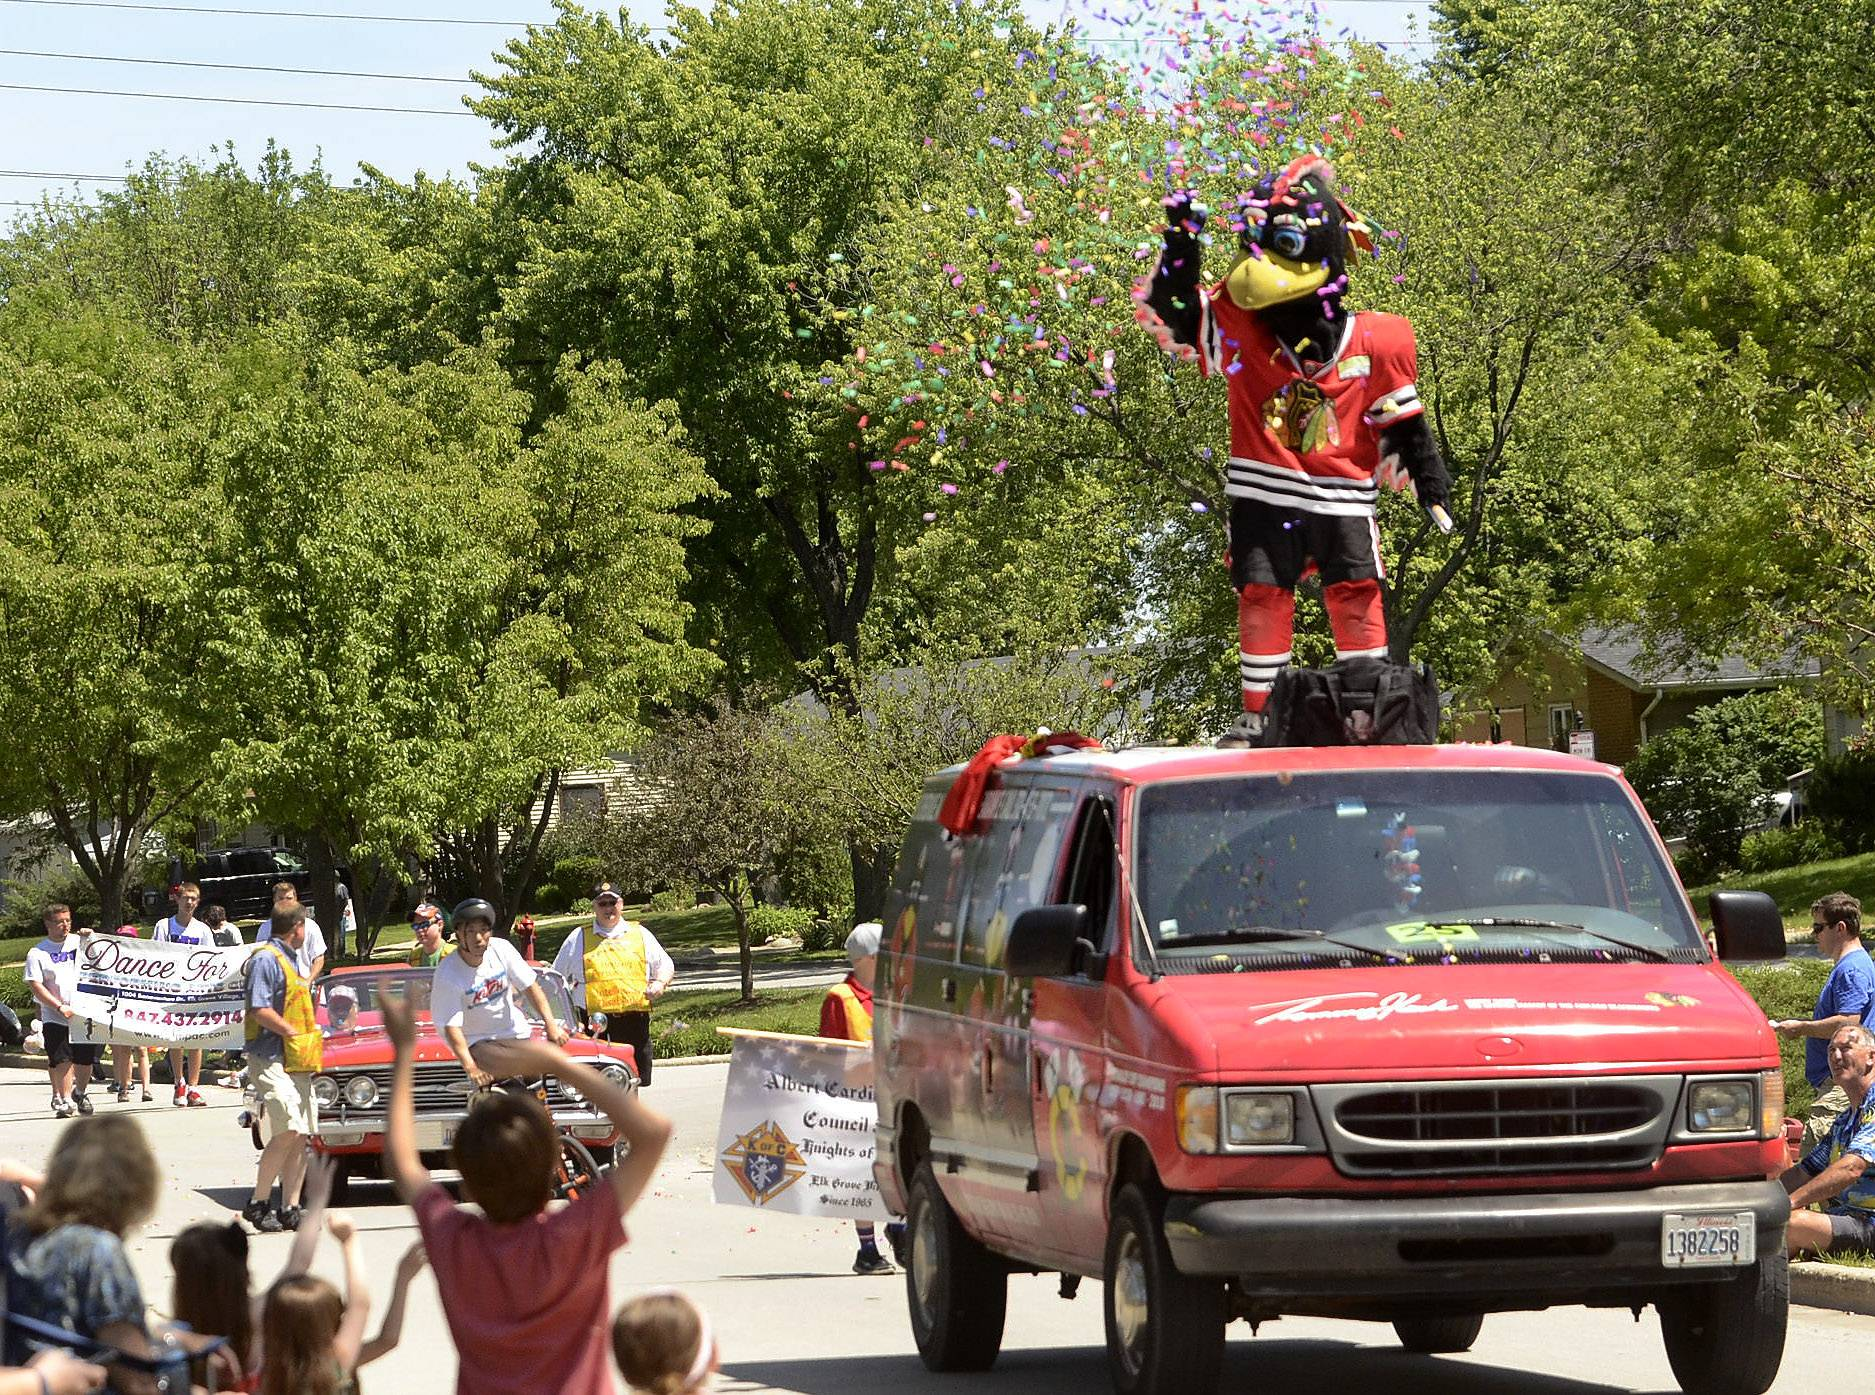 Chicago Blackhawks mascot Tommy Hawk blows off confetti Saturday afternoon along the route during the 2014 Elk Grove Hometown Parade, which kicked off at Tonne Road and Elk Grove Boulevard.